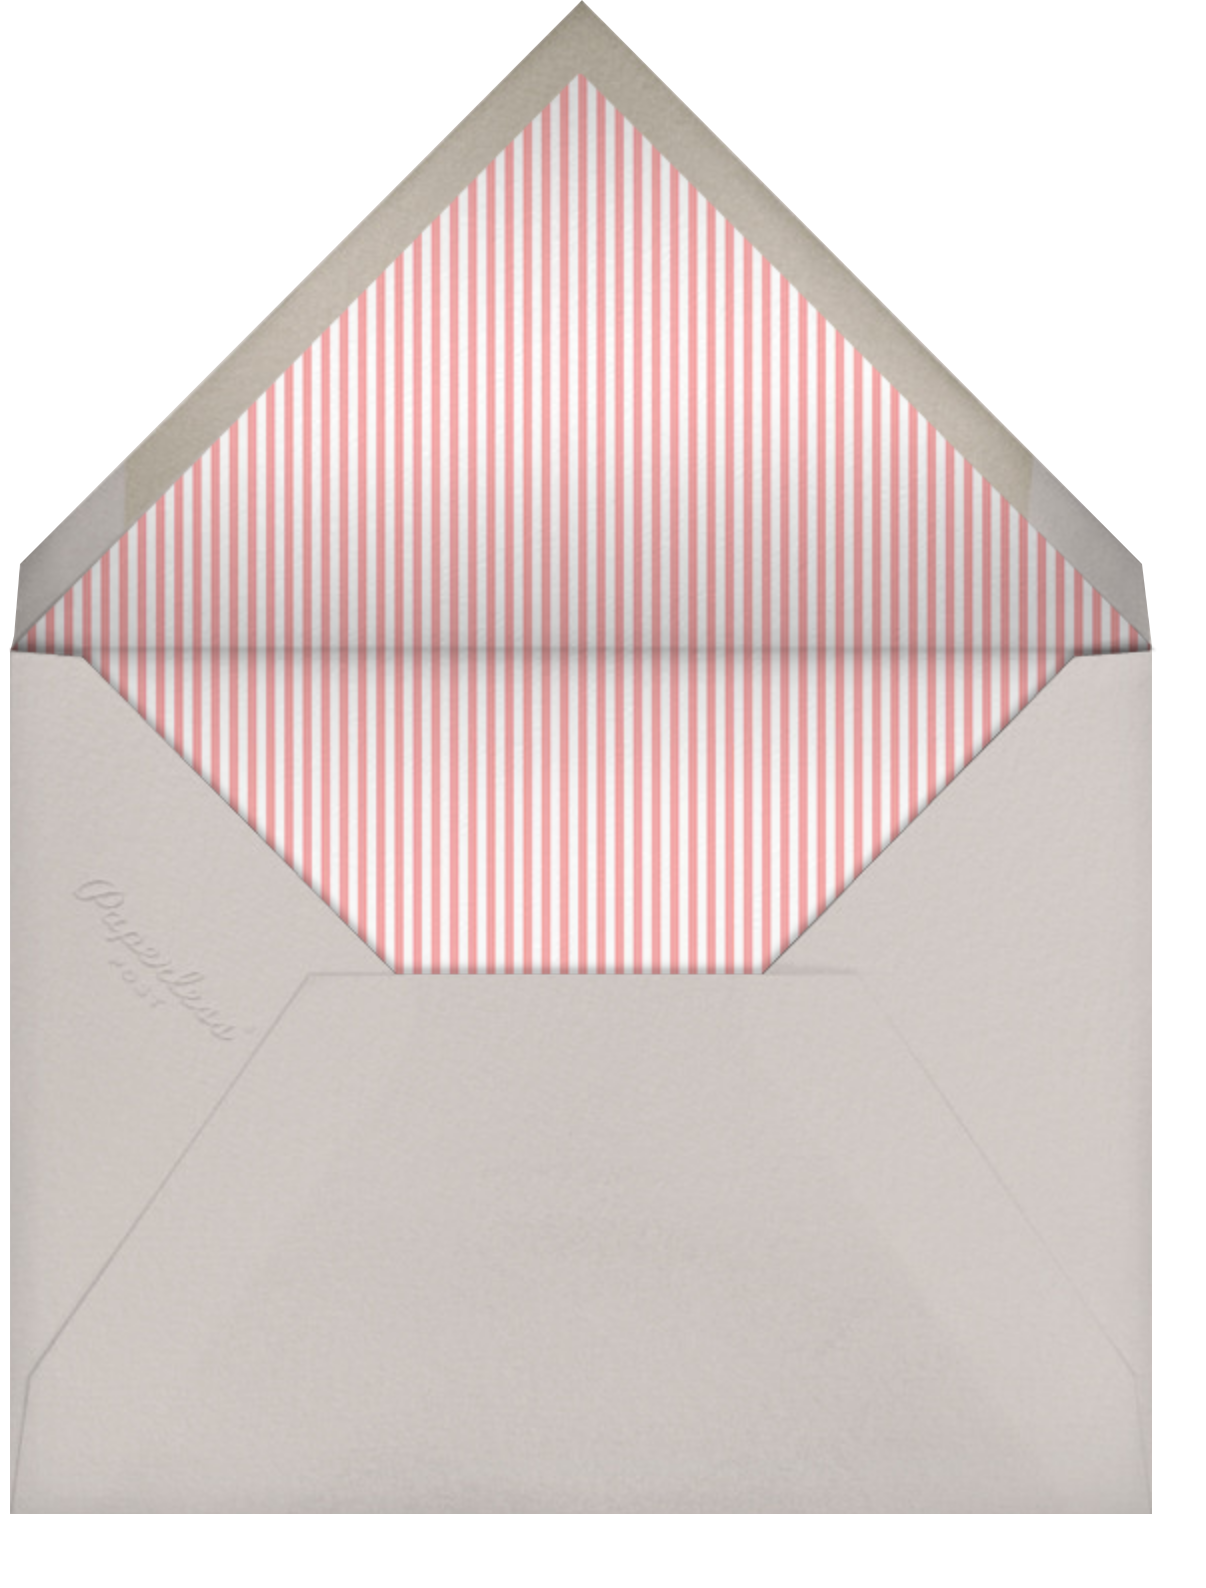 Little Heart Halo (Invitation) - Gold - Little Cube - Kids' birthday - envelope back